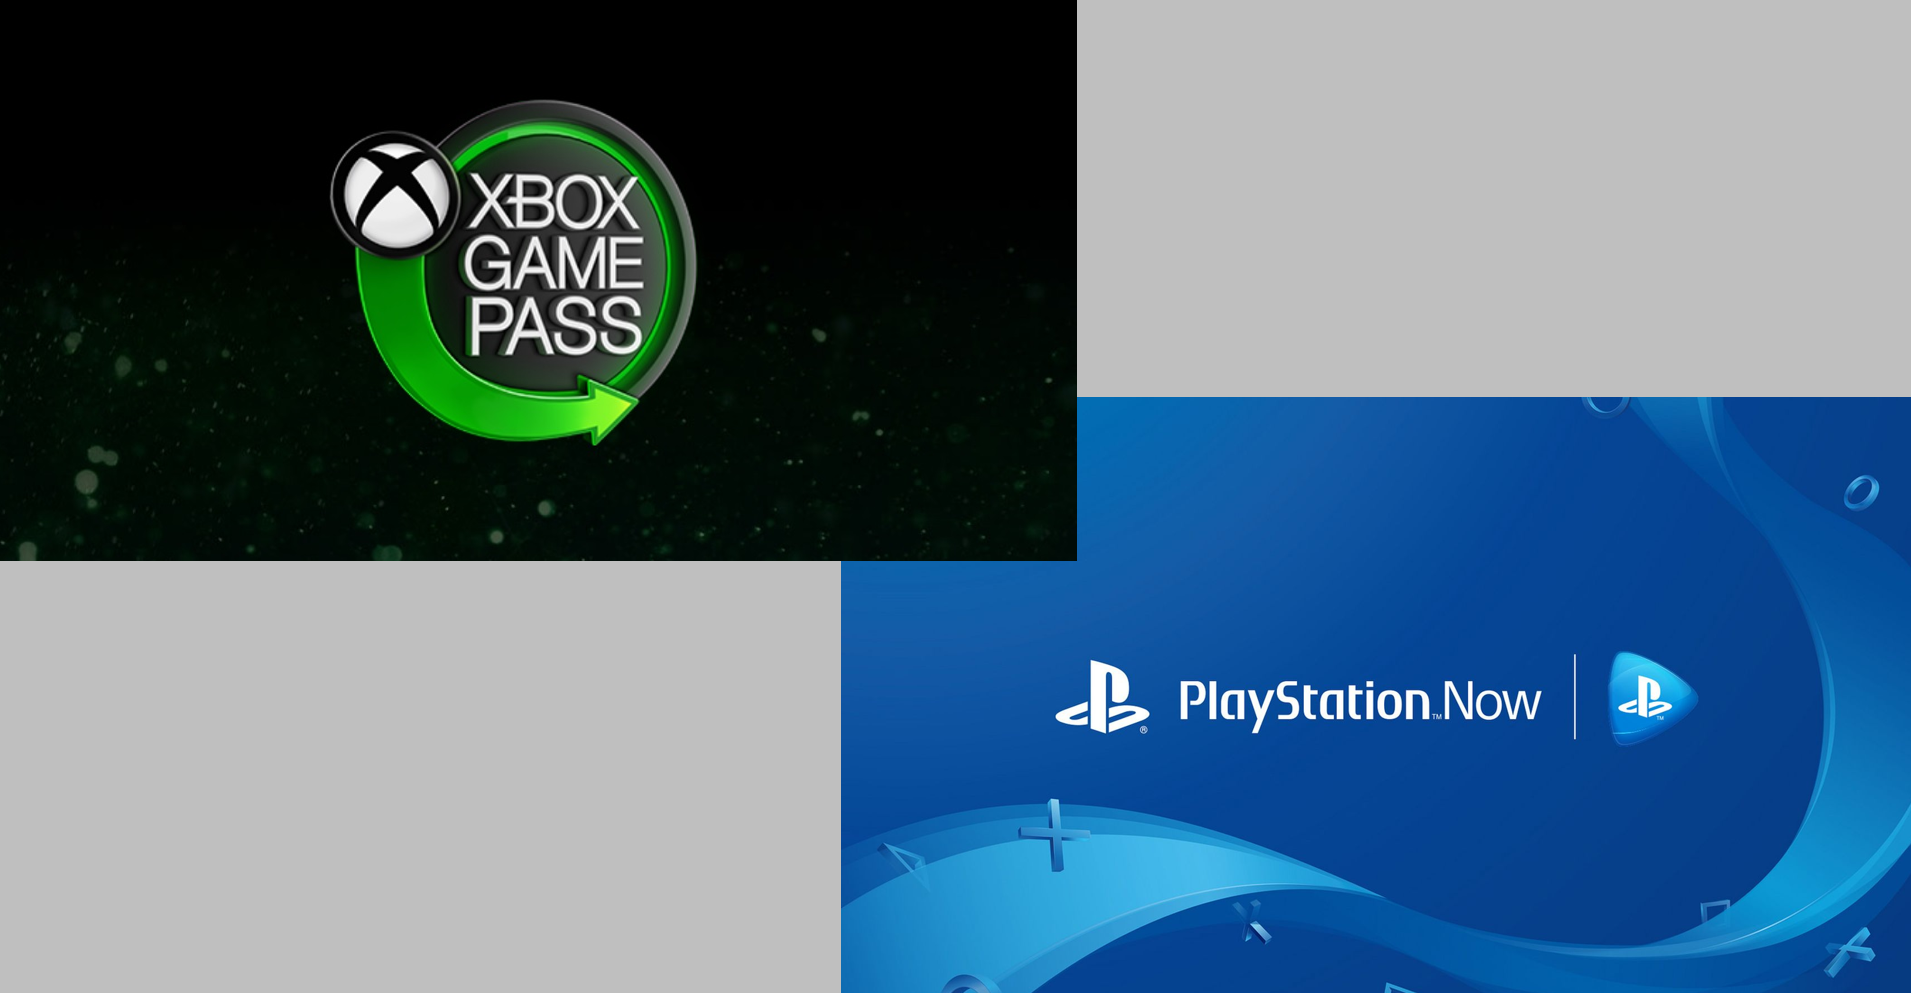 Xbox Game Pass and PS Now